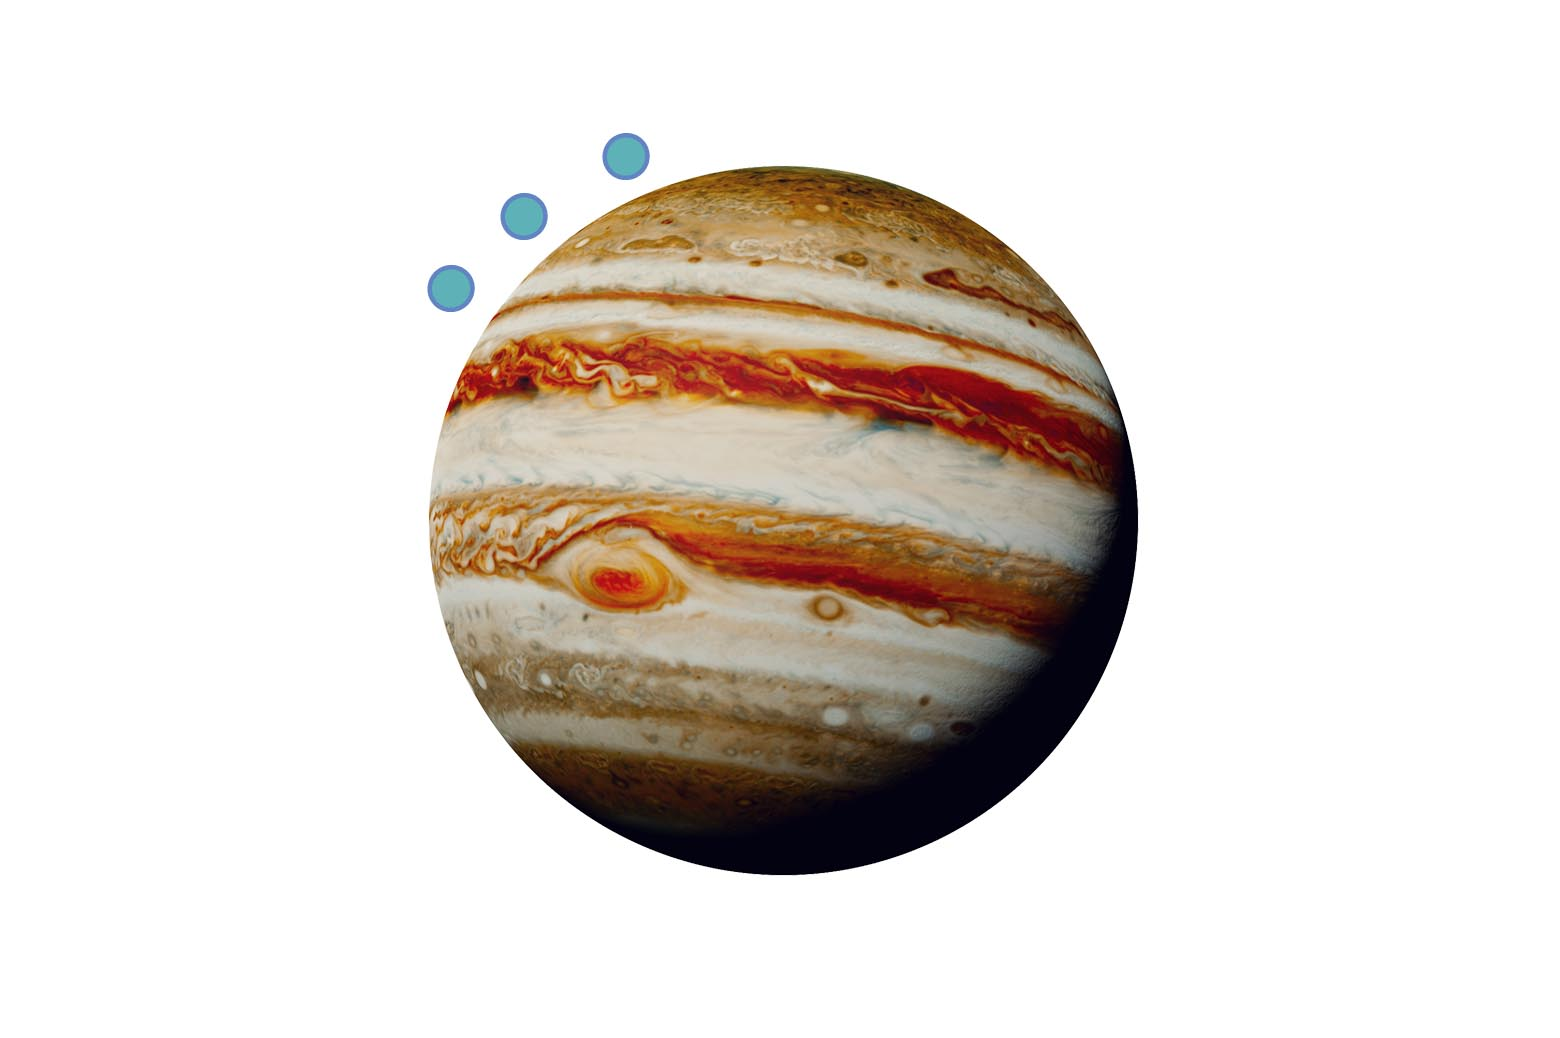 A Jupiter graphic with three blue circles indicating spacecrafts orbiting.